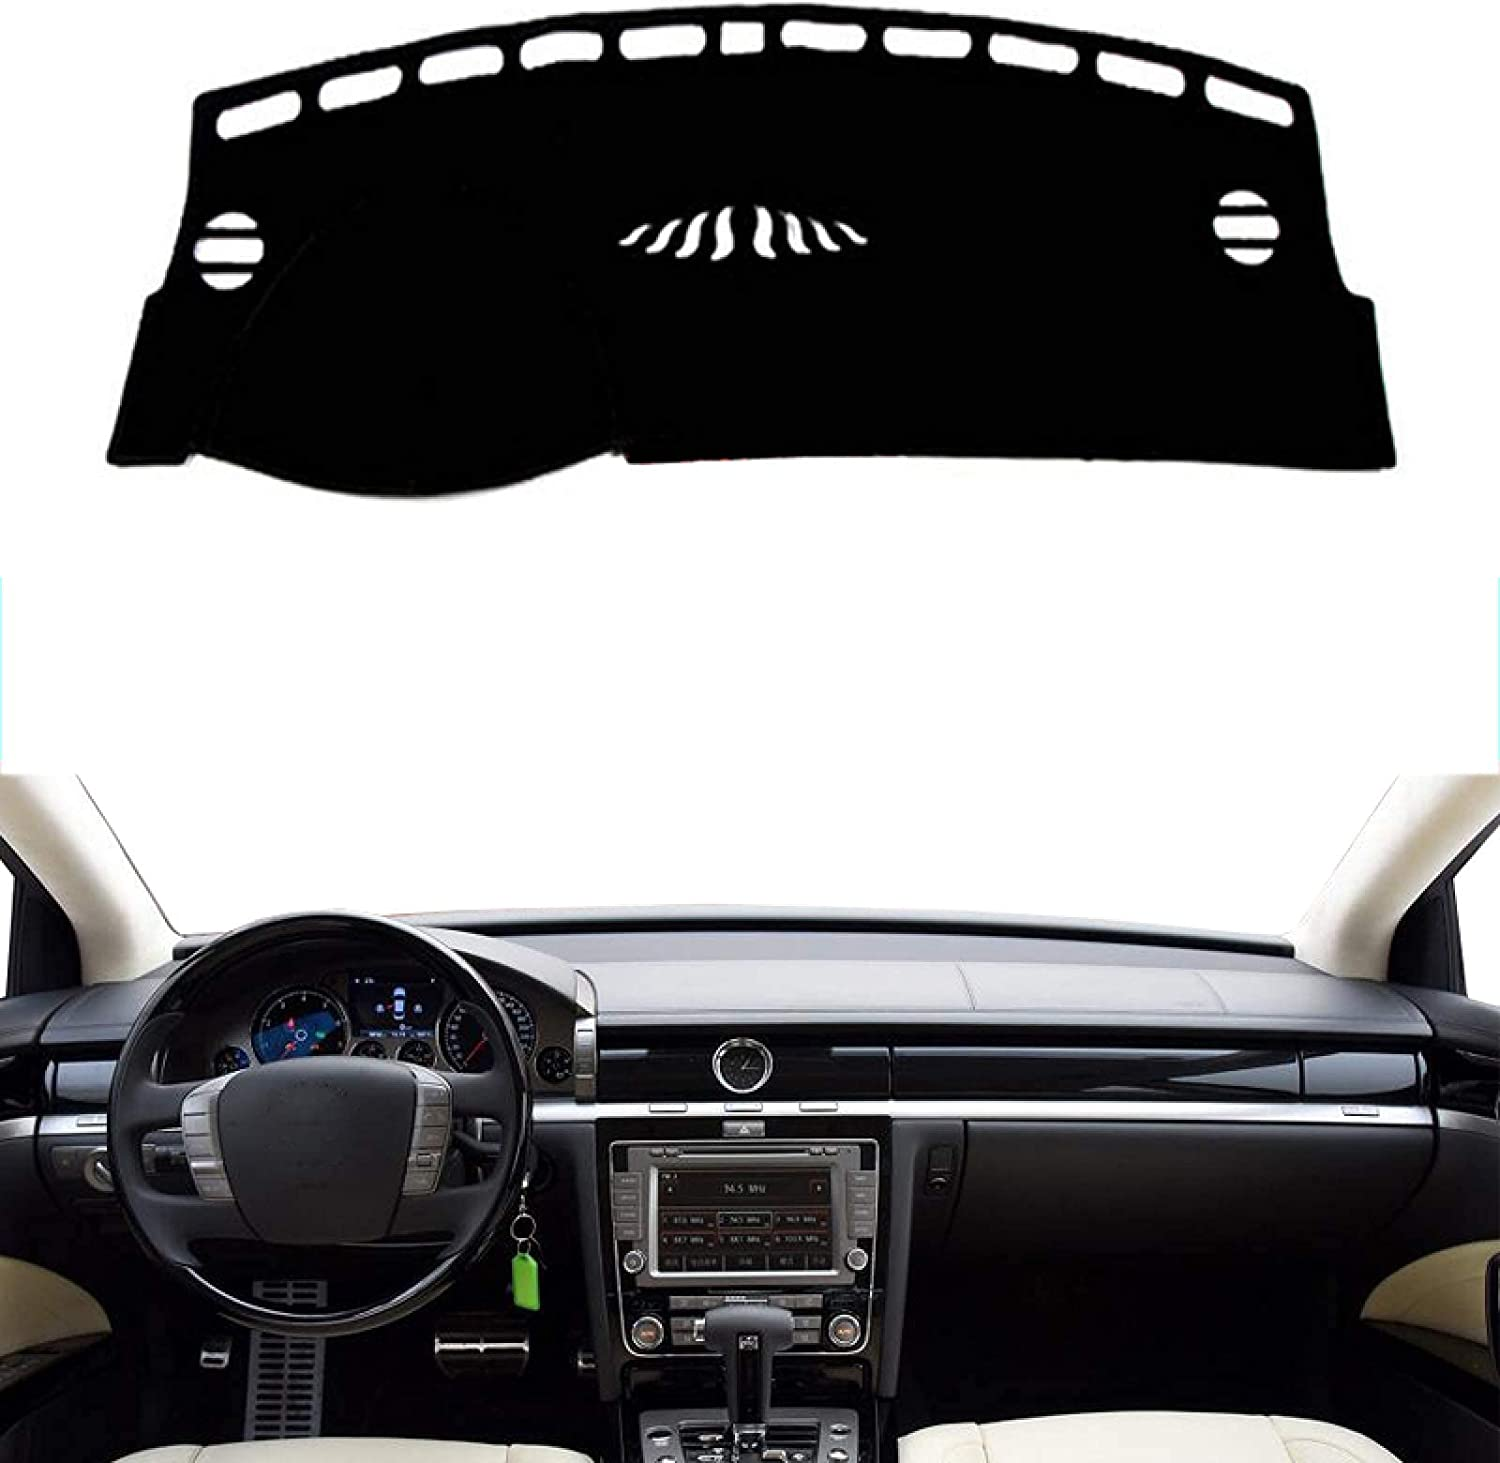 Car Dashboard Cover Max 89% OFF Carpet Mat for Dash Cape Courier shipping free shipping